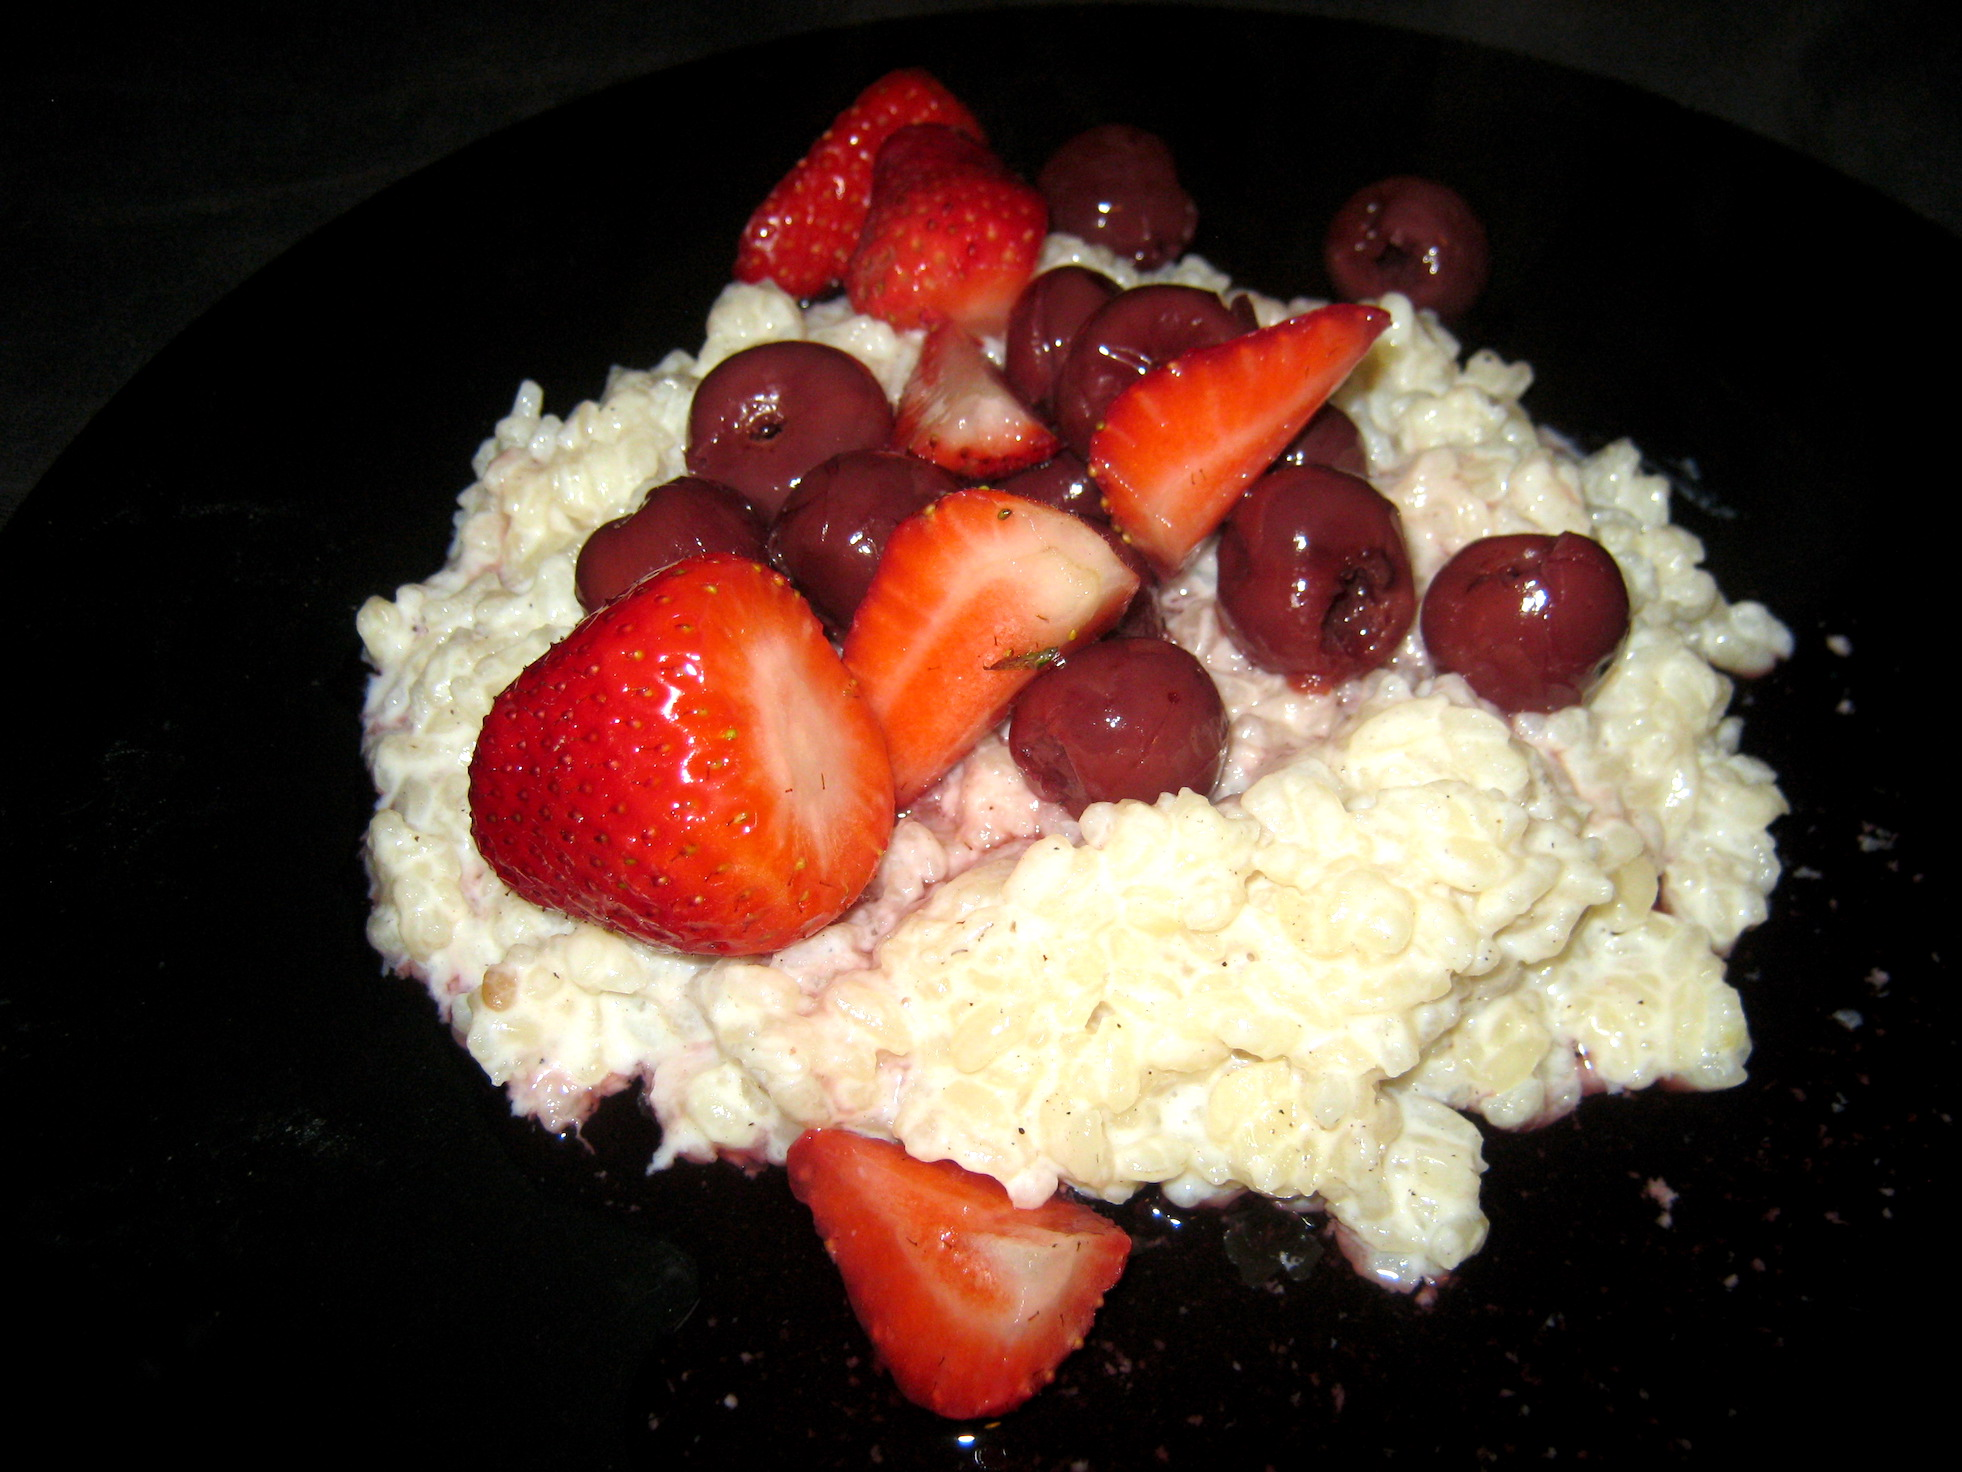 Oma's Milchreis - Rice Pudding with cherries and strawberries on black plate